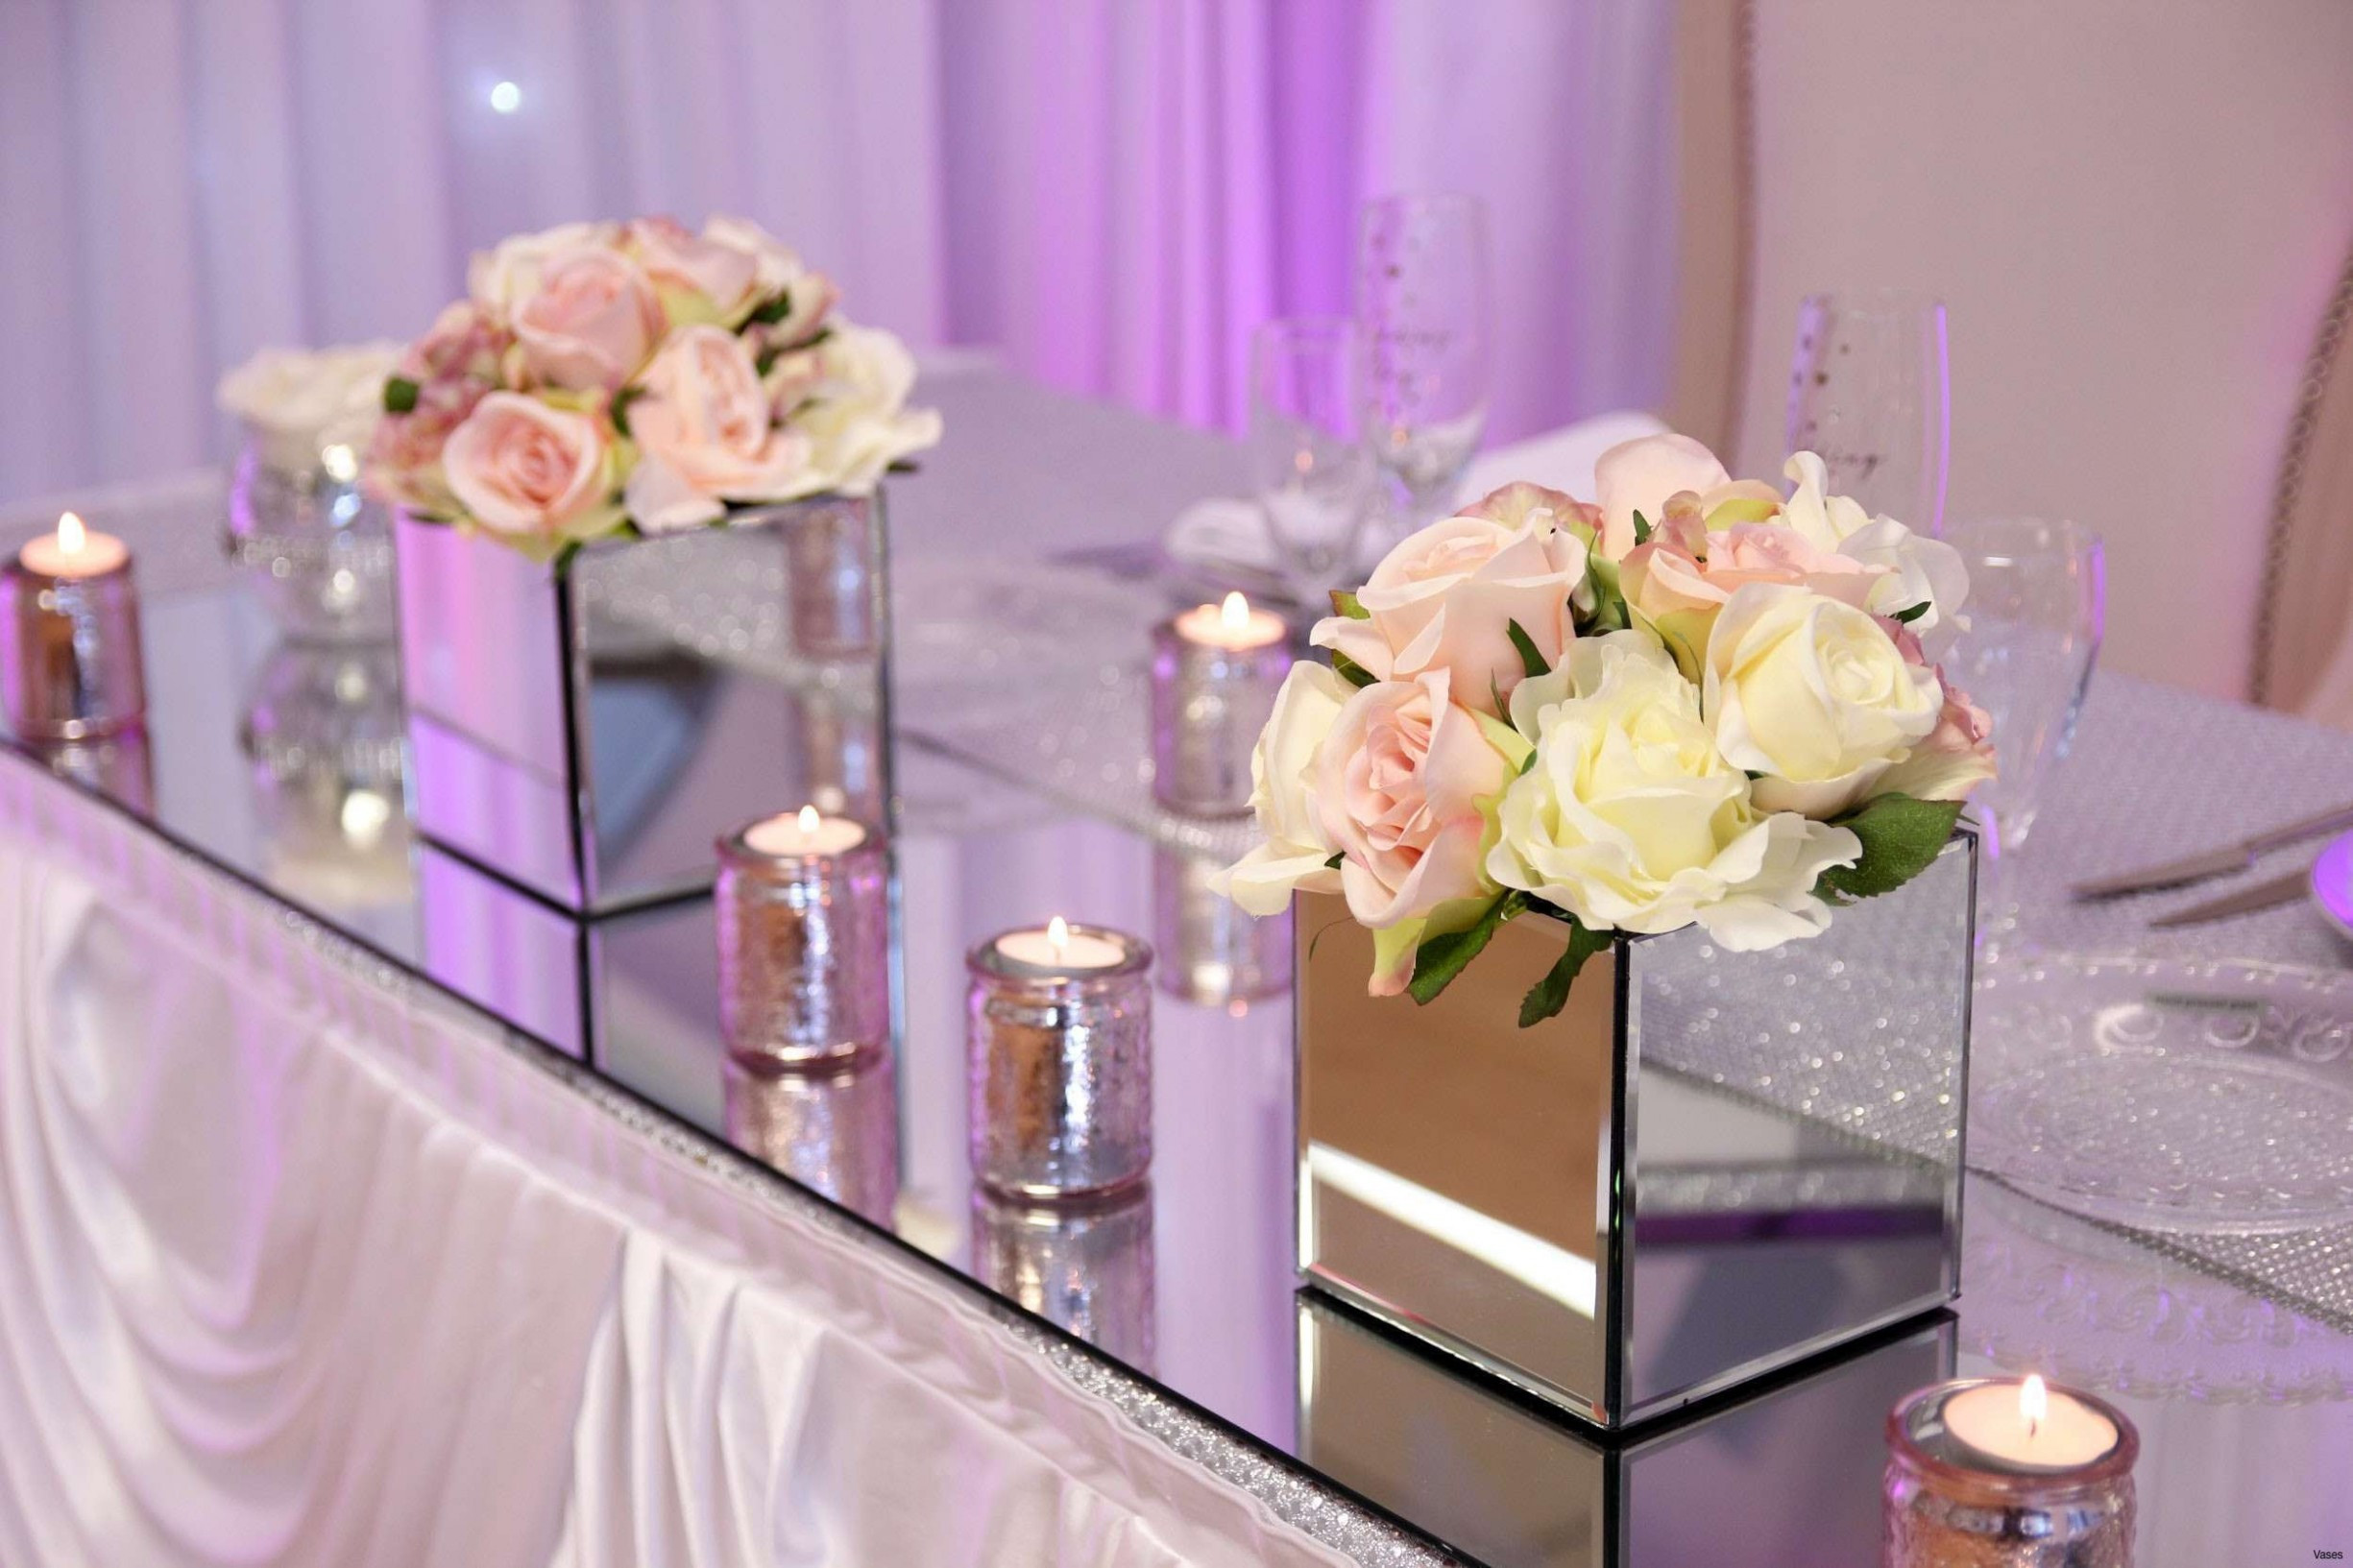 6 bud vase of mirrored square vase 3h vases mirror table decorationi 0d weddings within mirrored square vase 3h vases mirror table decorationi 0d weddings